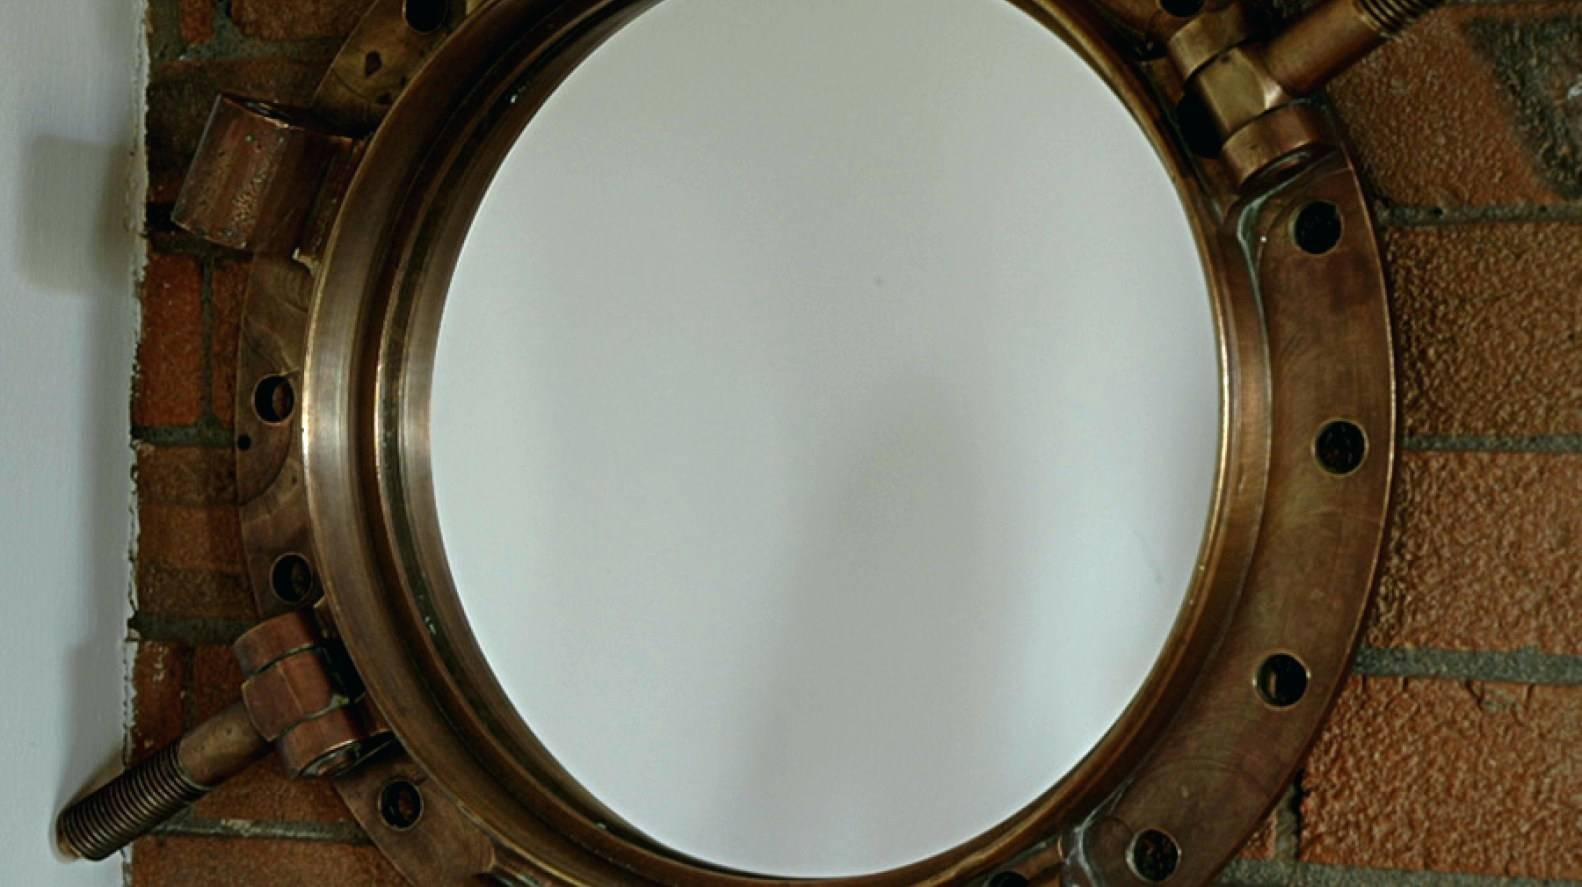 Wall Mirrors ~ Large Round Convex Wall Mirror Round Decorative intended for Convex Wall Mirrors (Image 13 of 15)